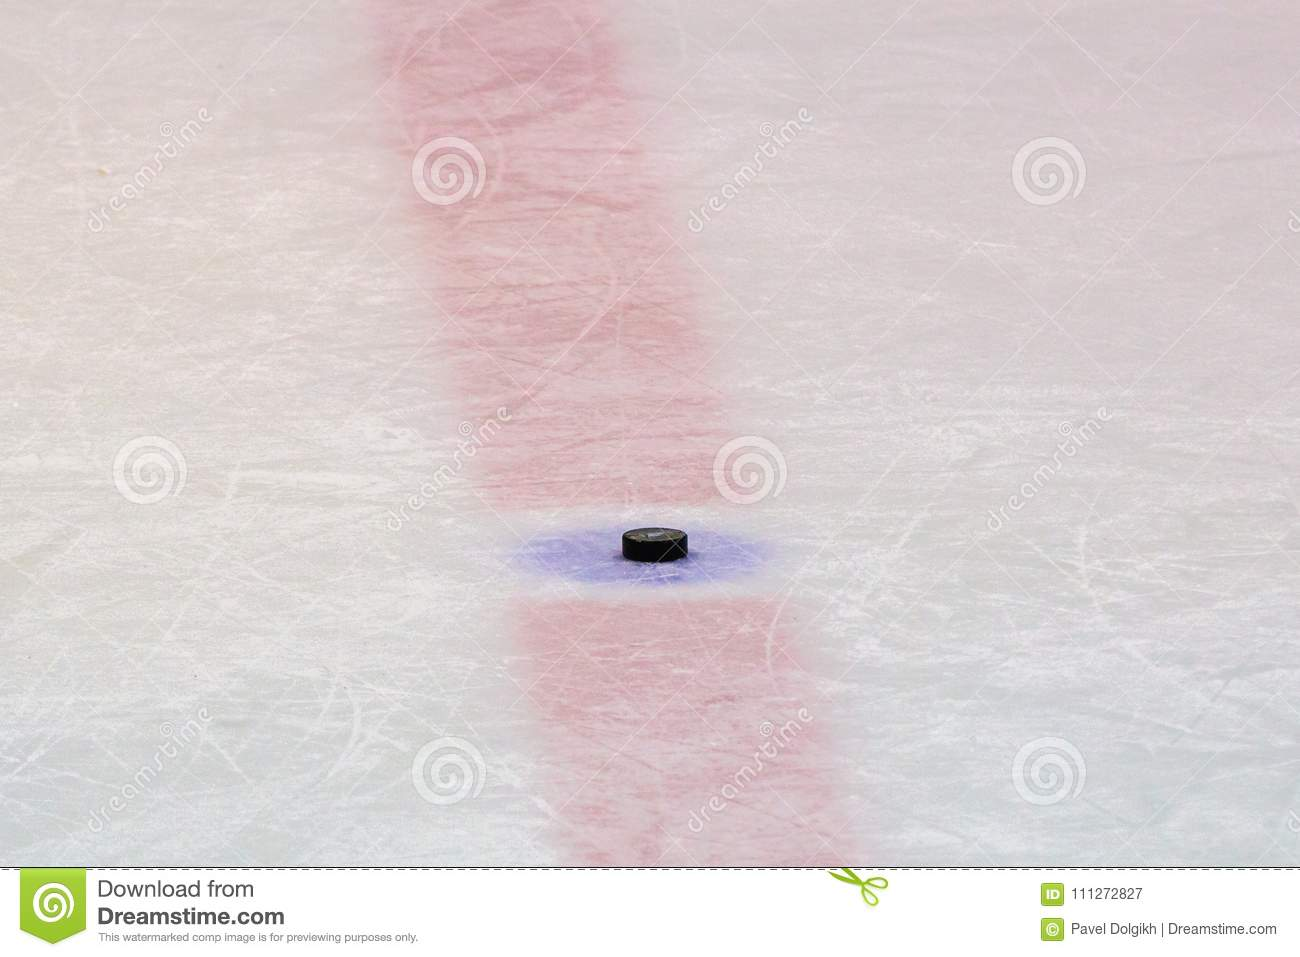 Hockey puck on ice stadium